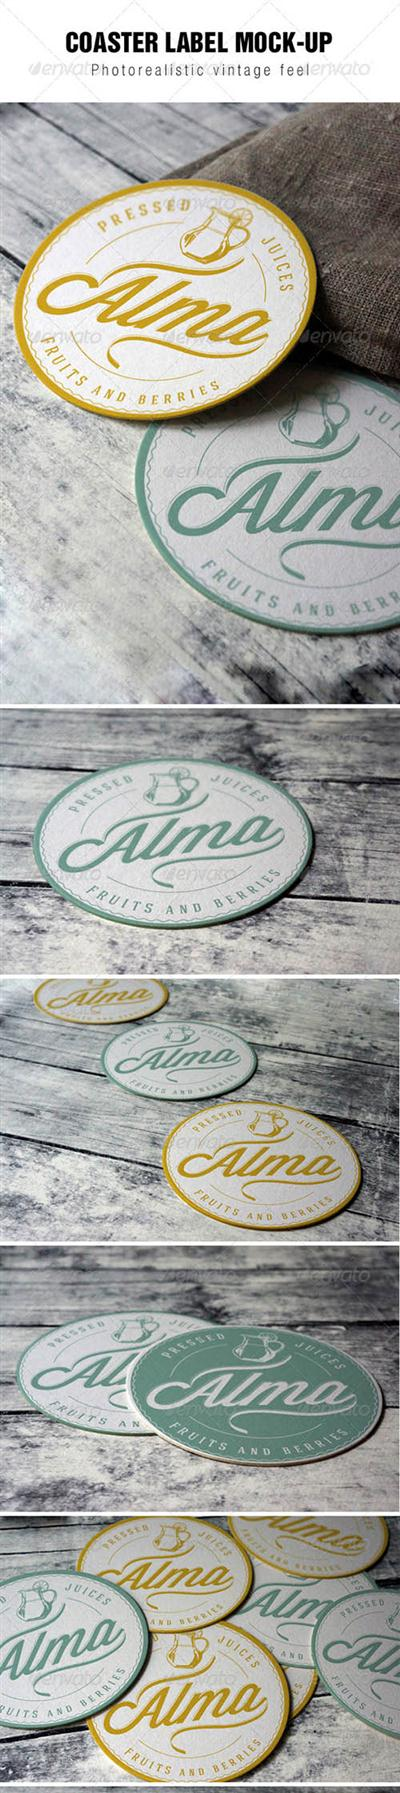 Coaster Label Mockup 8004457